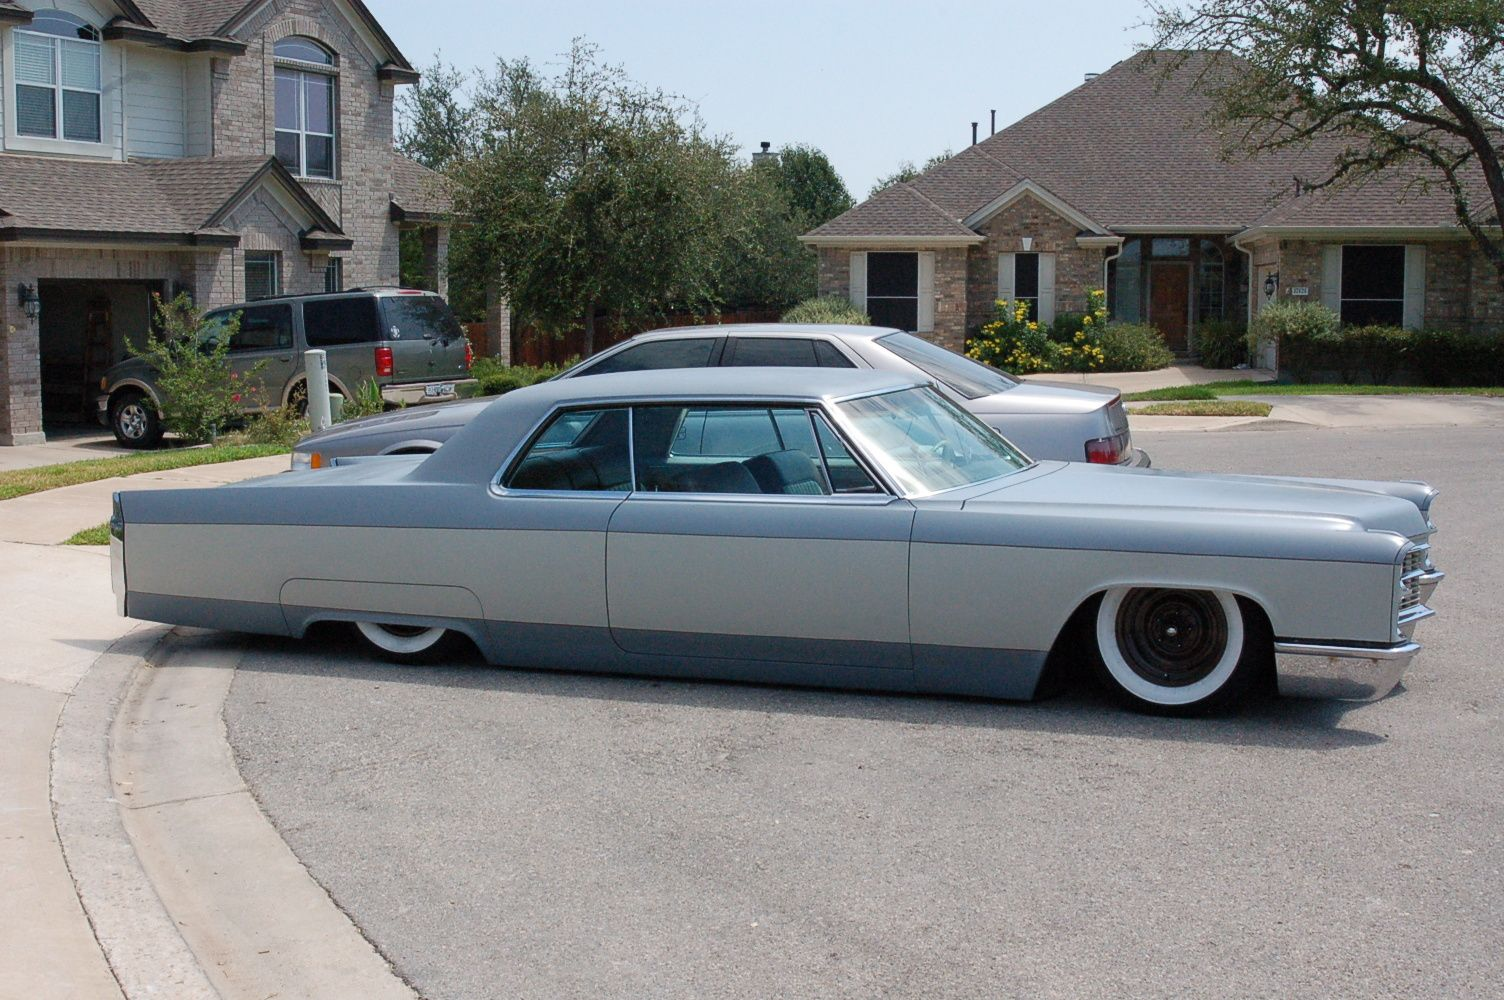 Another smartersite 1966 Cadillac DeVille post2038887 by